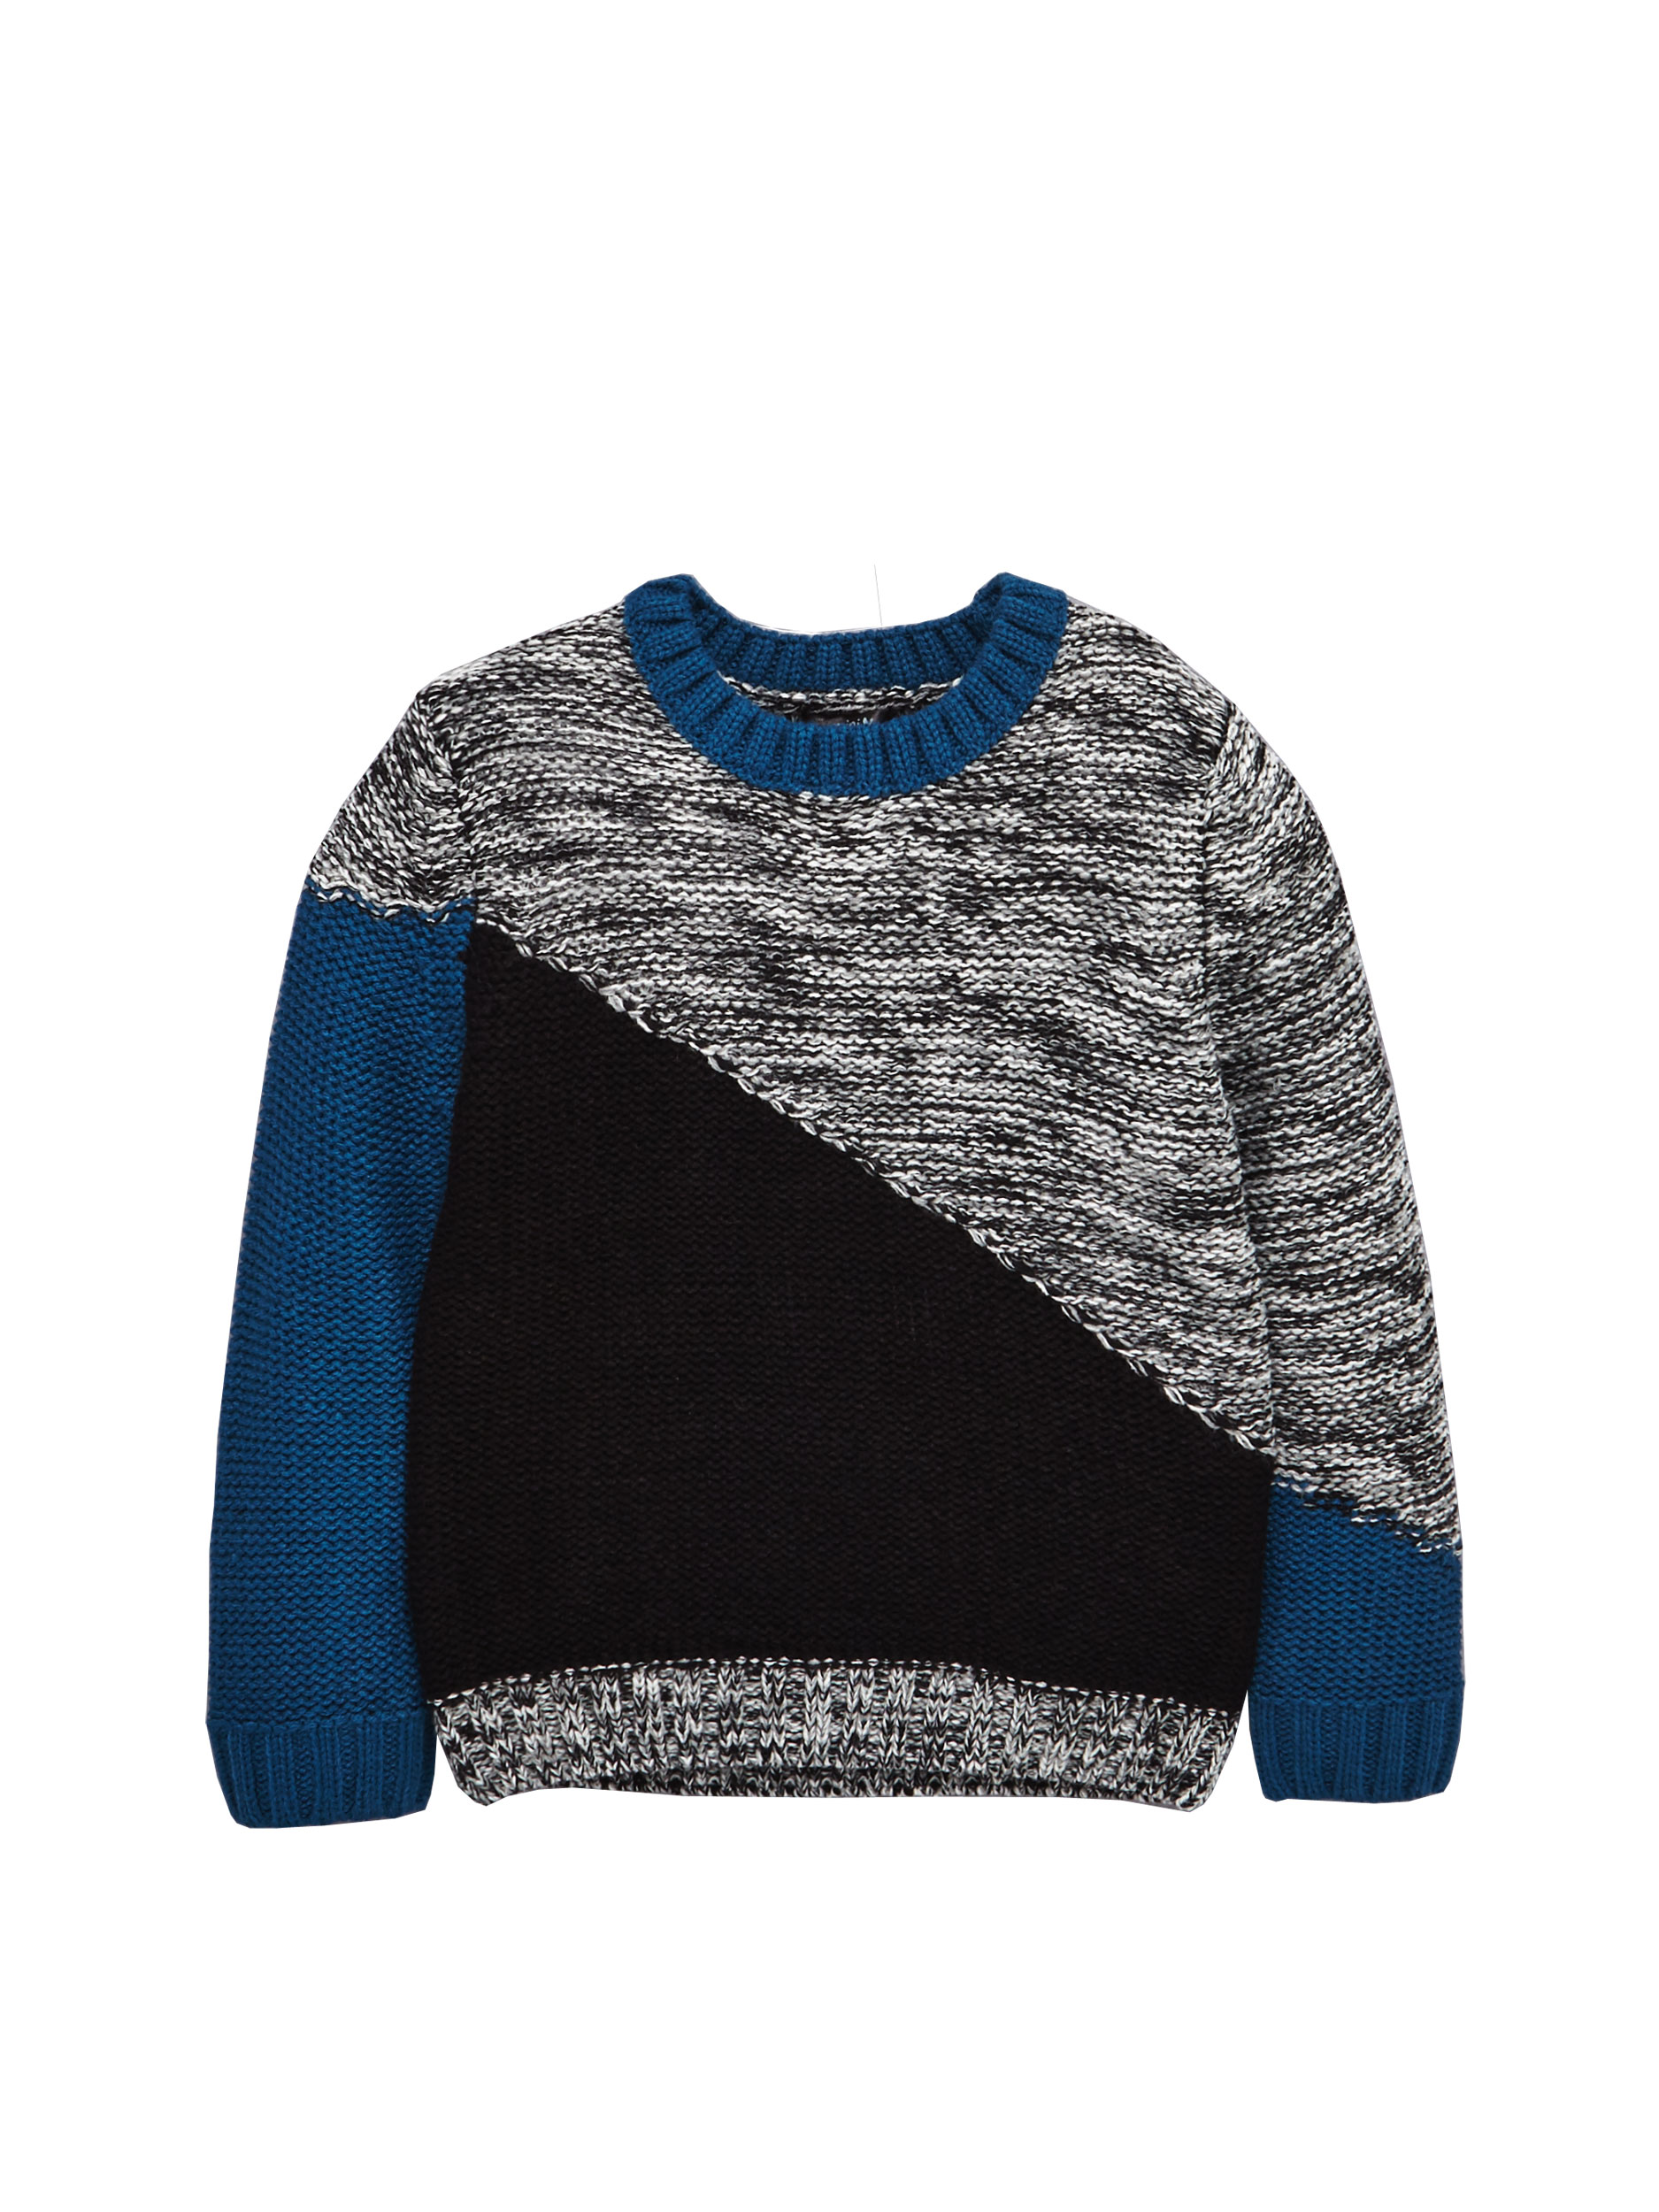 Mini V by VeryBoys Diagonal Colour Block Knitted Jumper.